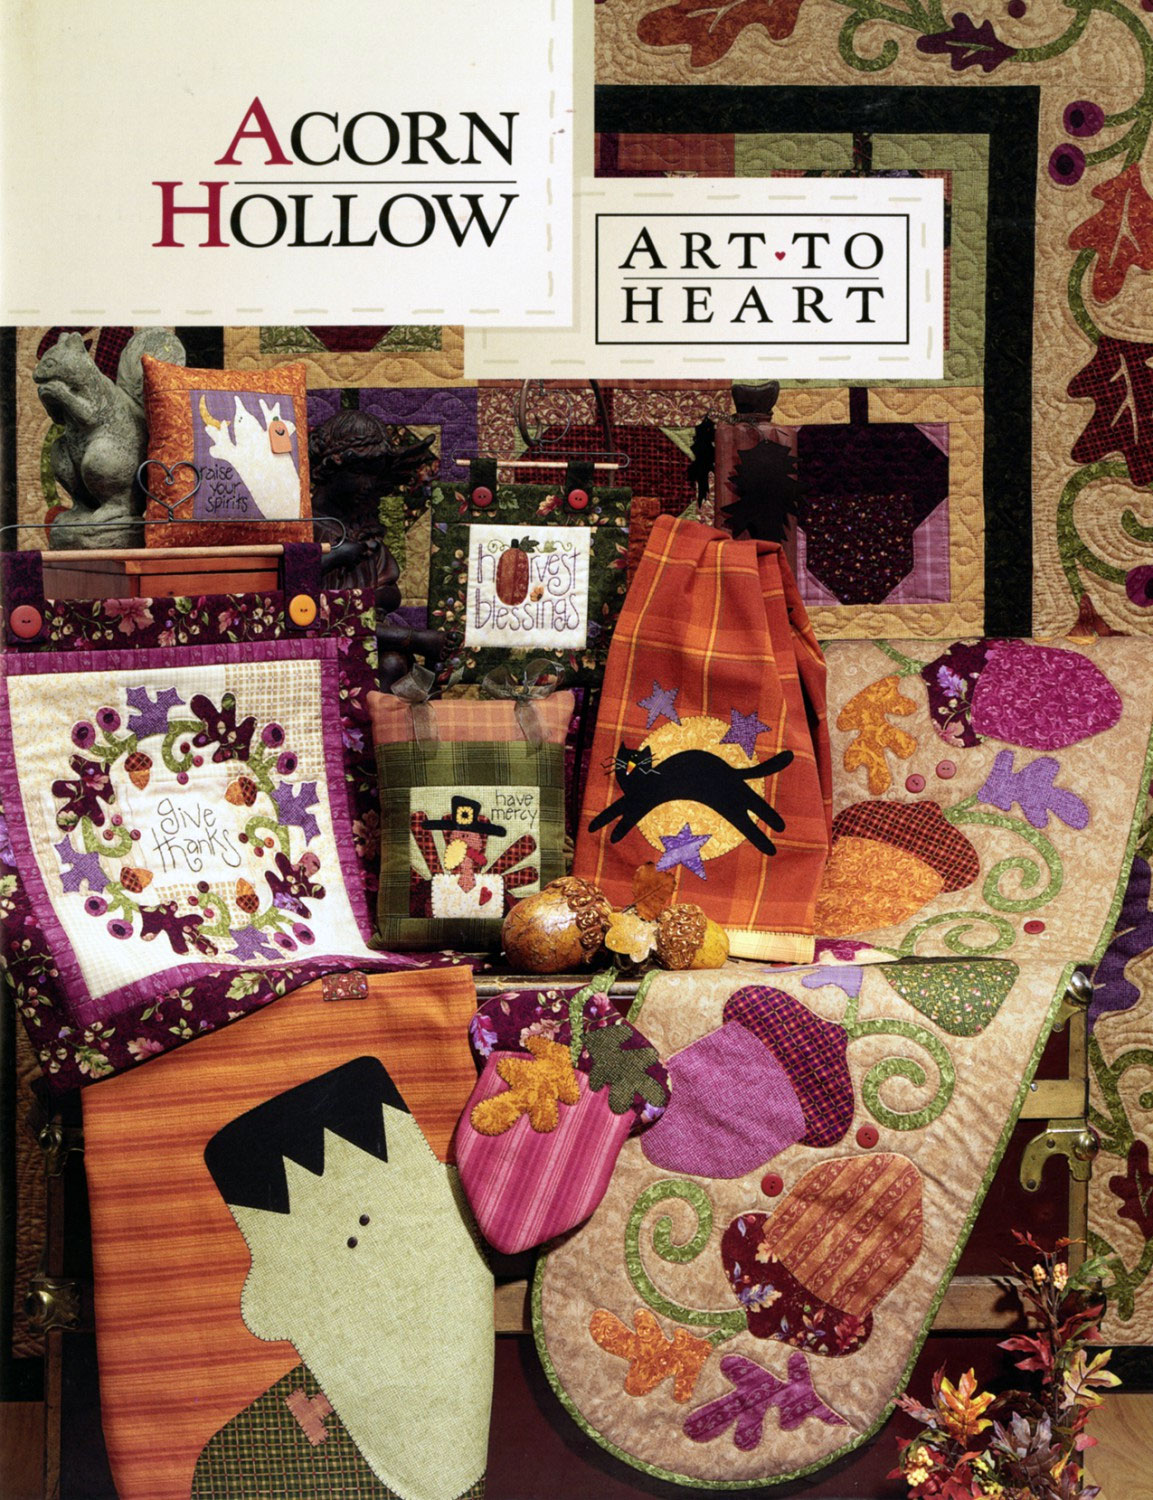 Acorn-hollow-sewing-book-Art-To-Heart-front